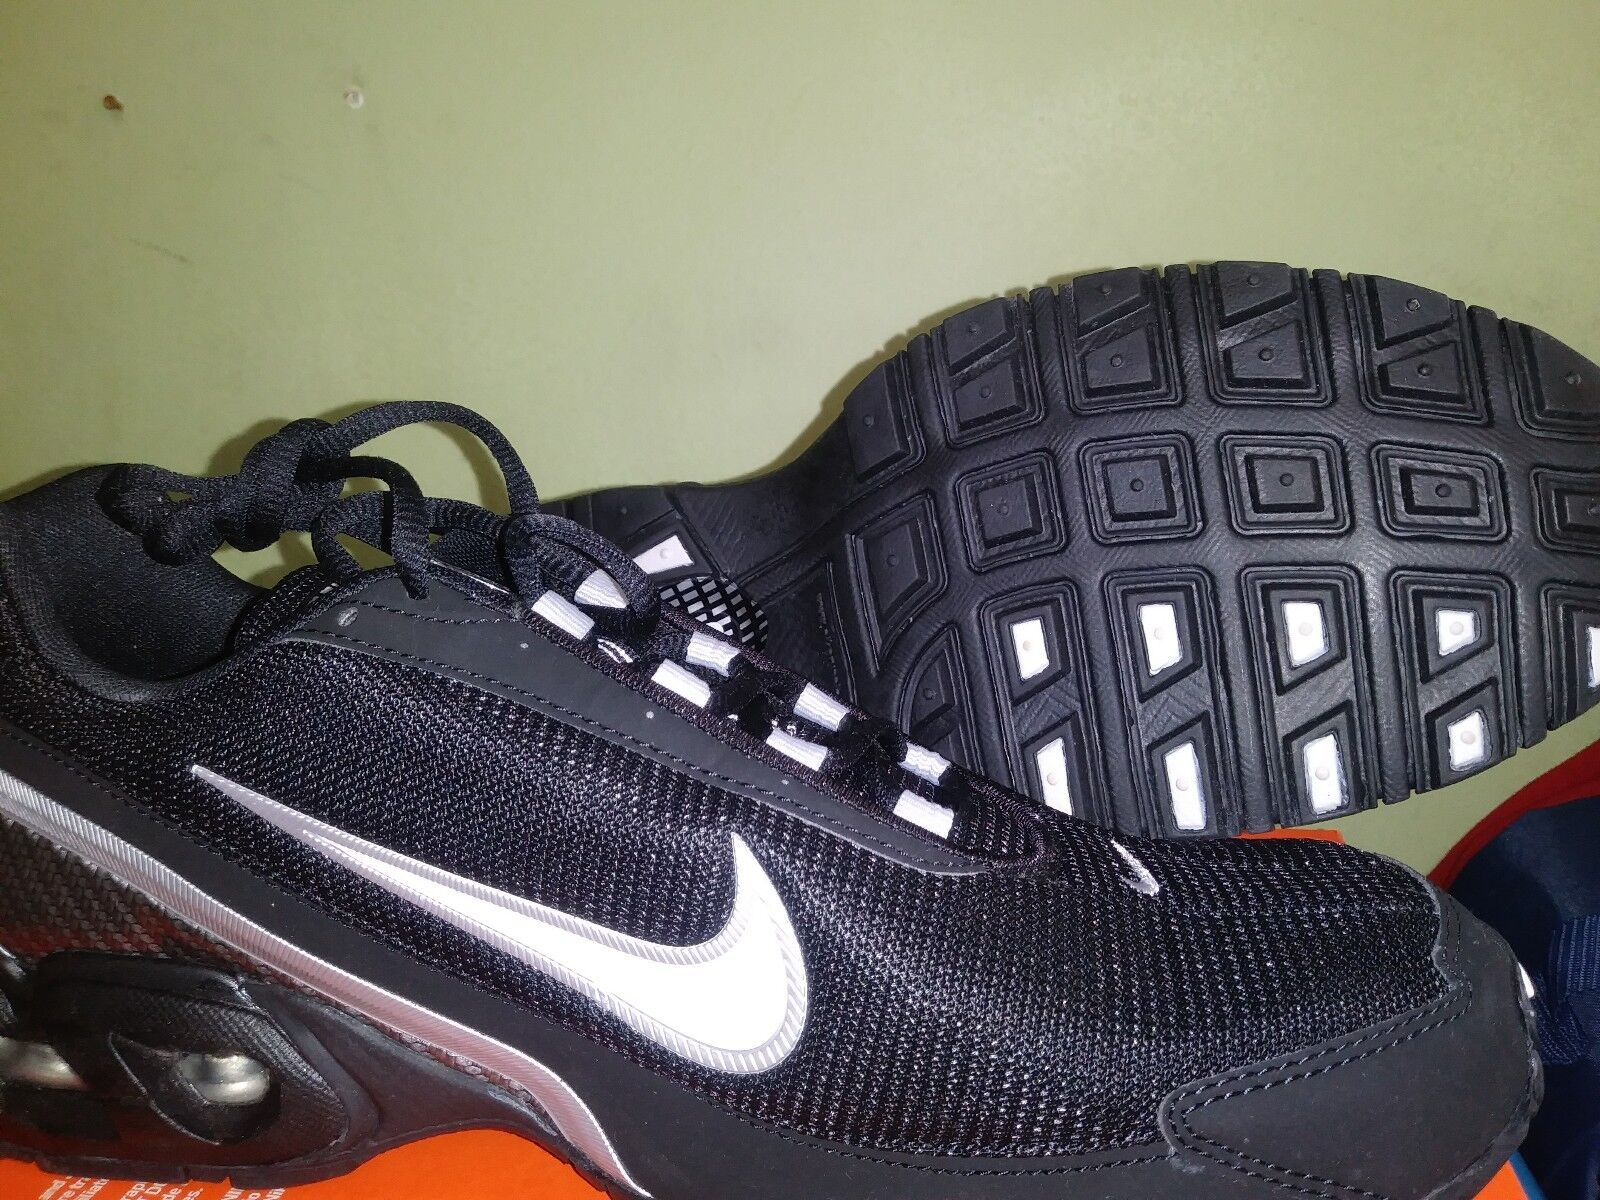 New Nike Nike Nike Air Max Torch 3 Mens Running shoes Black Silver Carbon White 319116 011 aaac4c